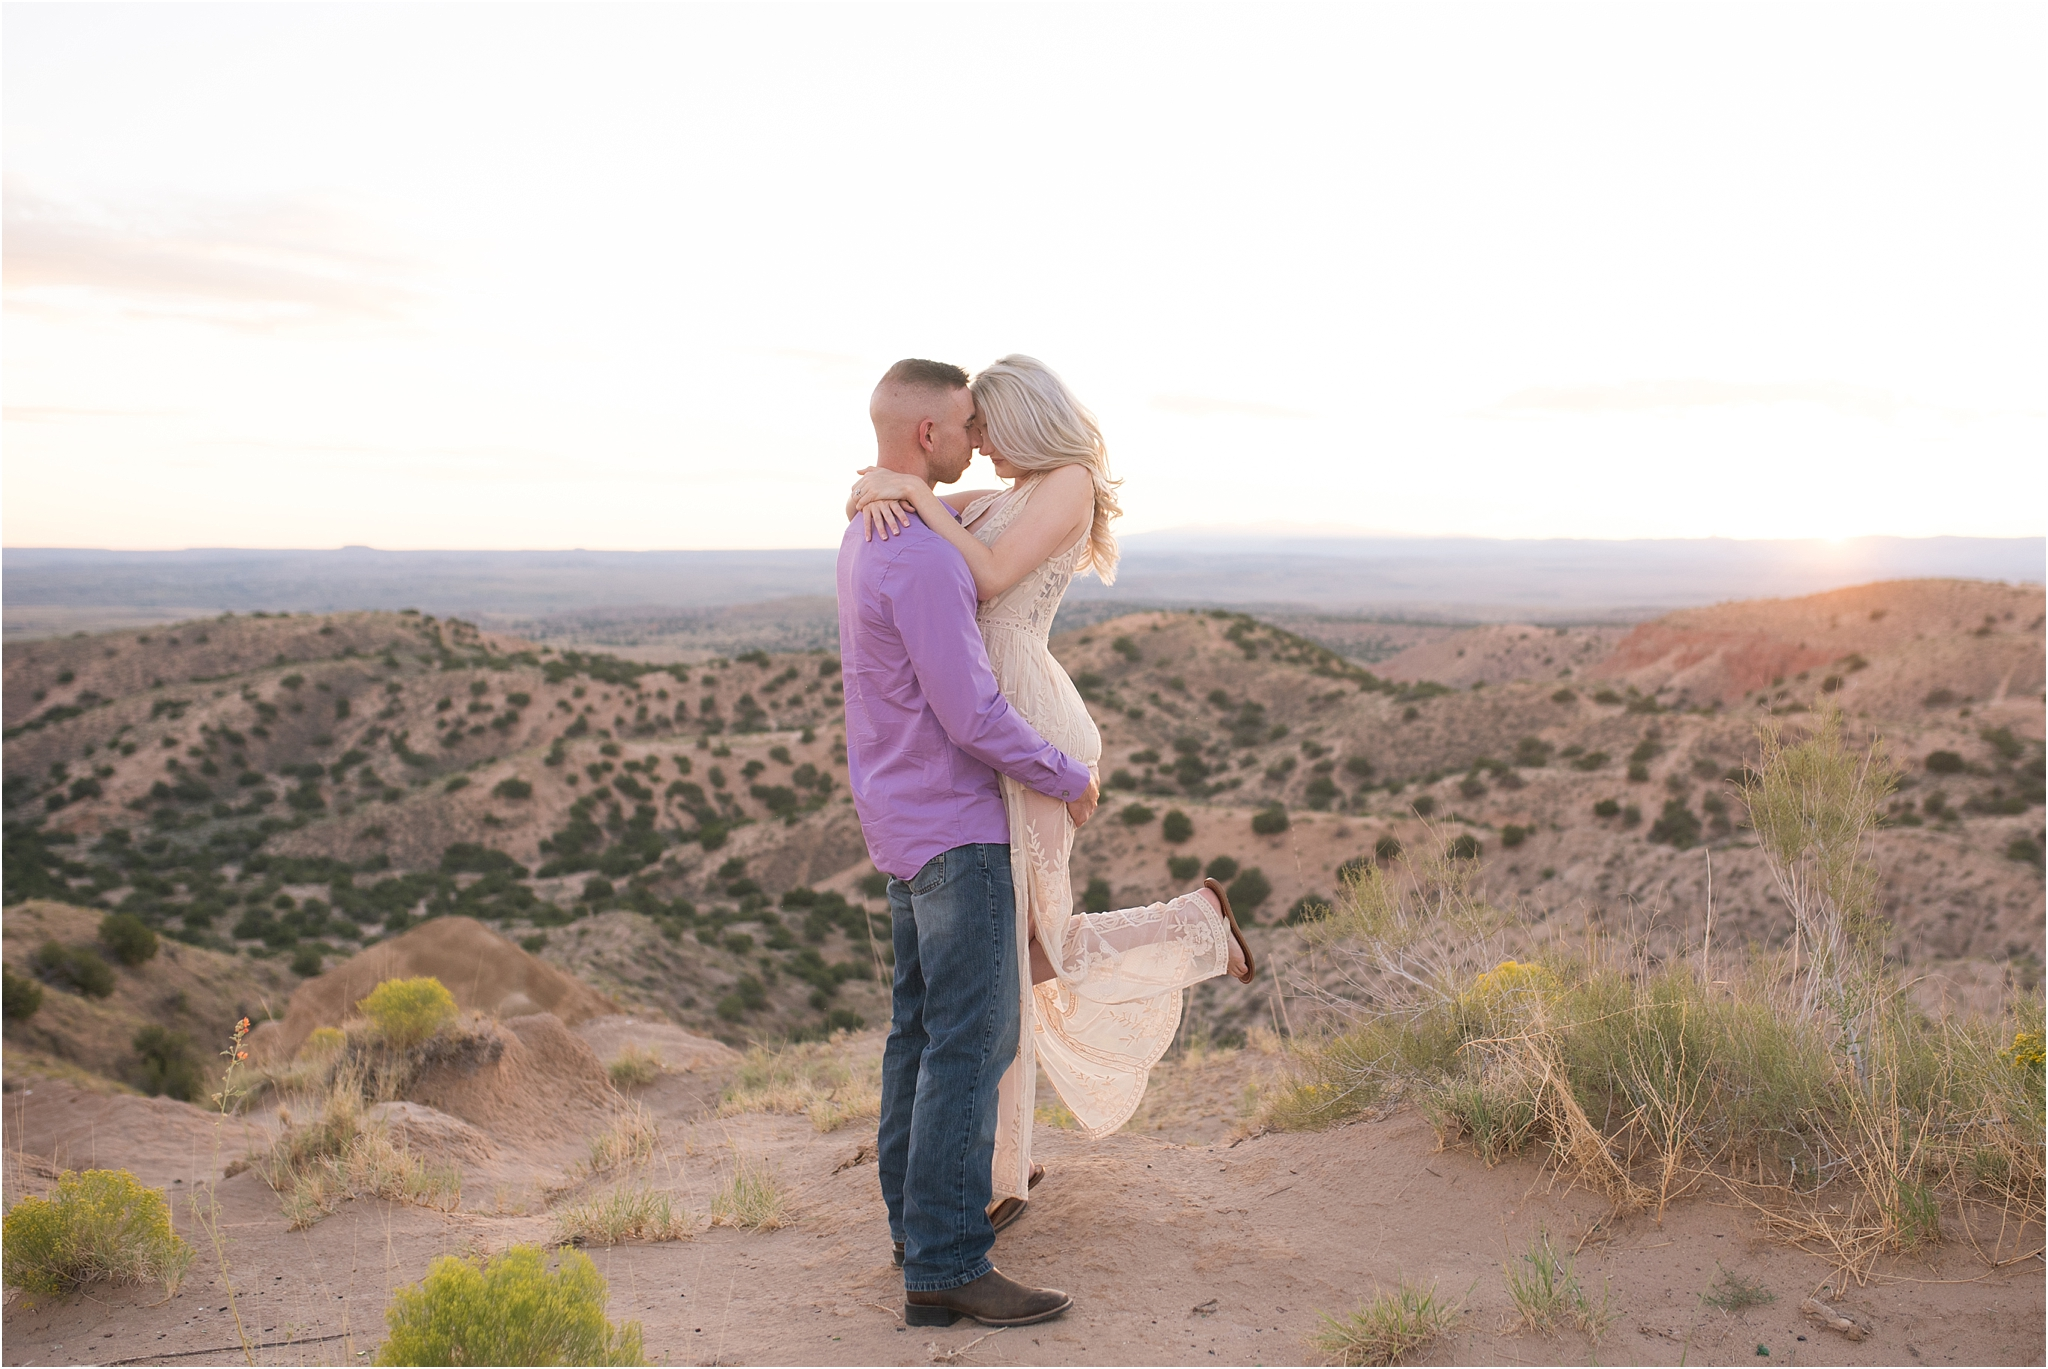 kayla kitts photography - new mexico wedding photographer - albuquerque engagement session_0021.jpg